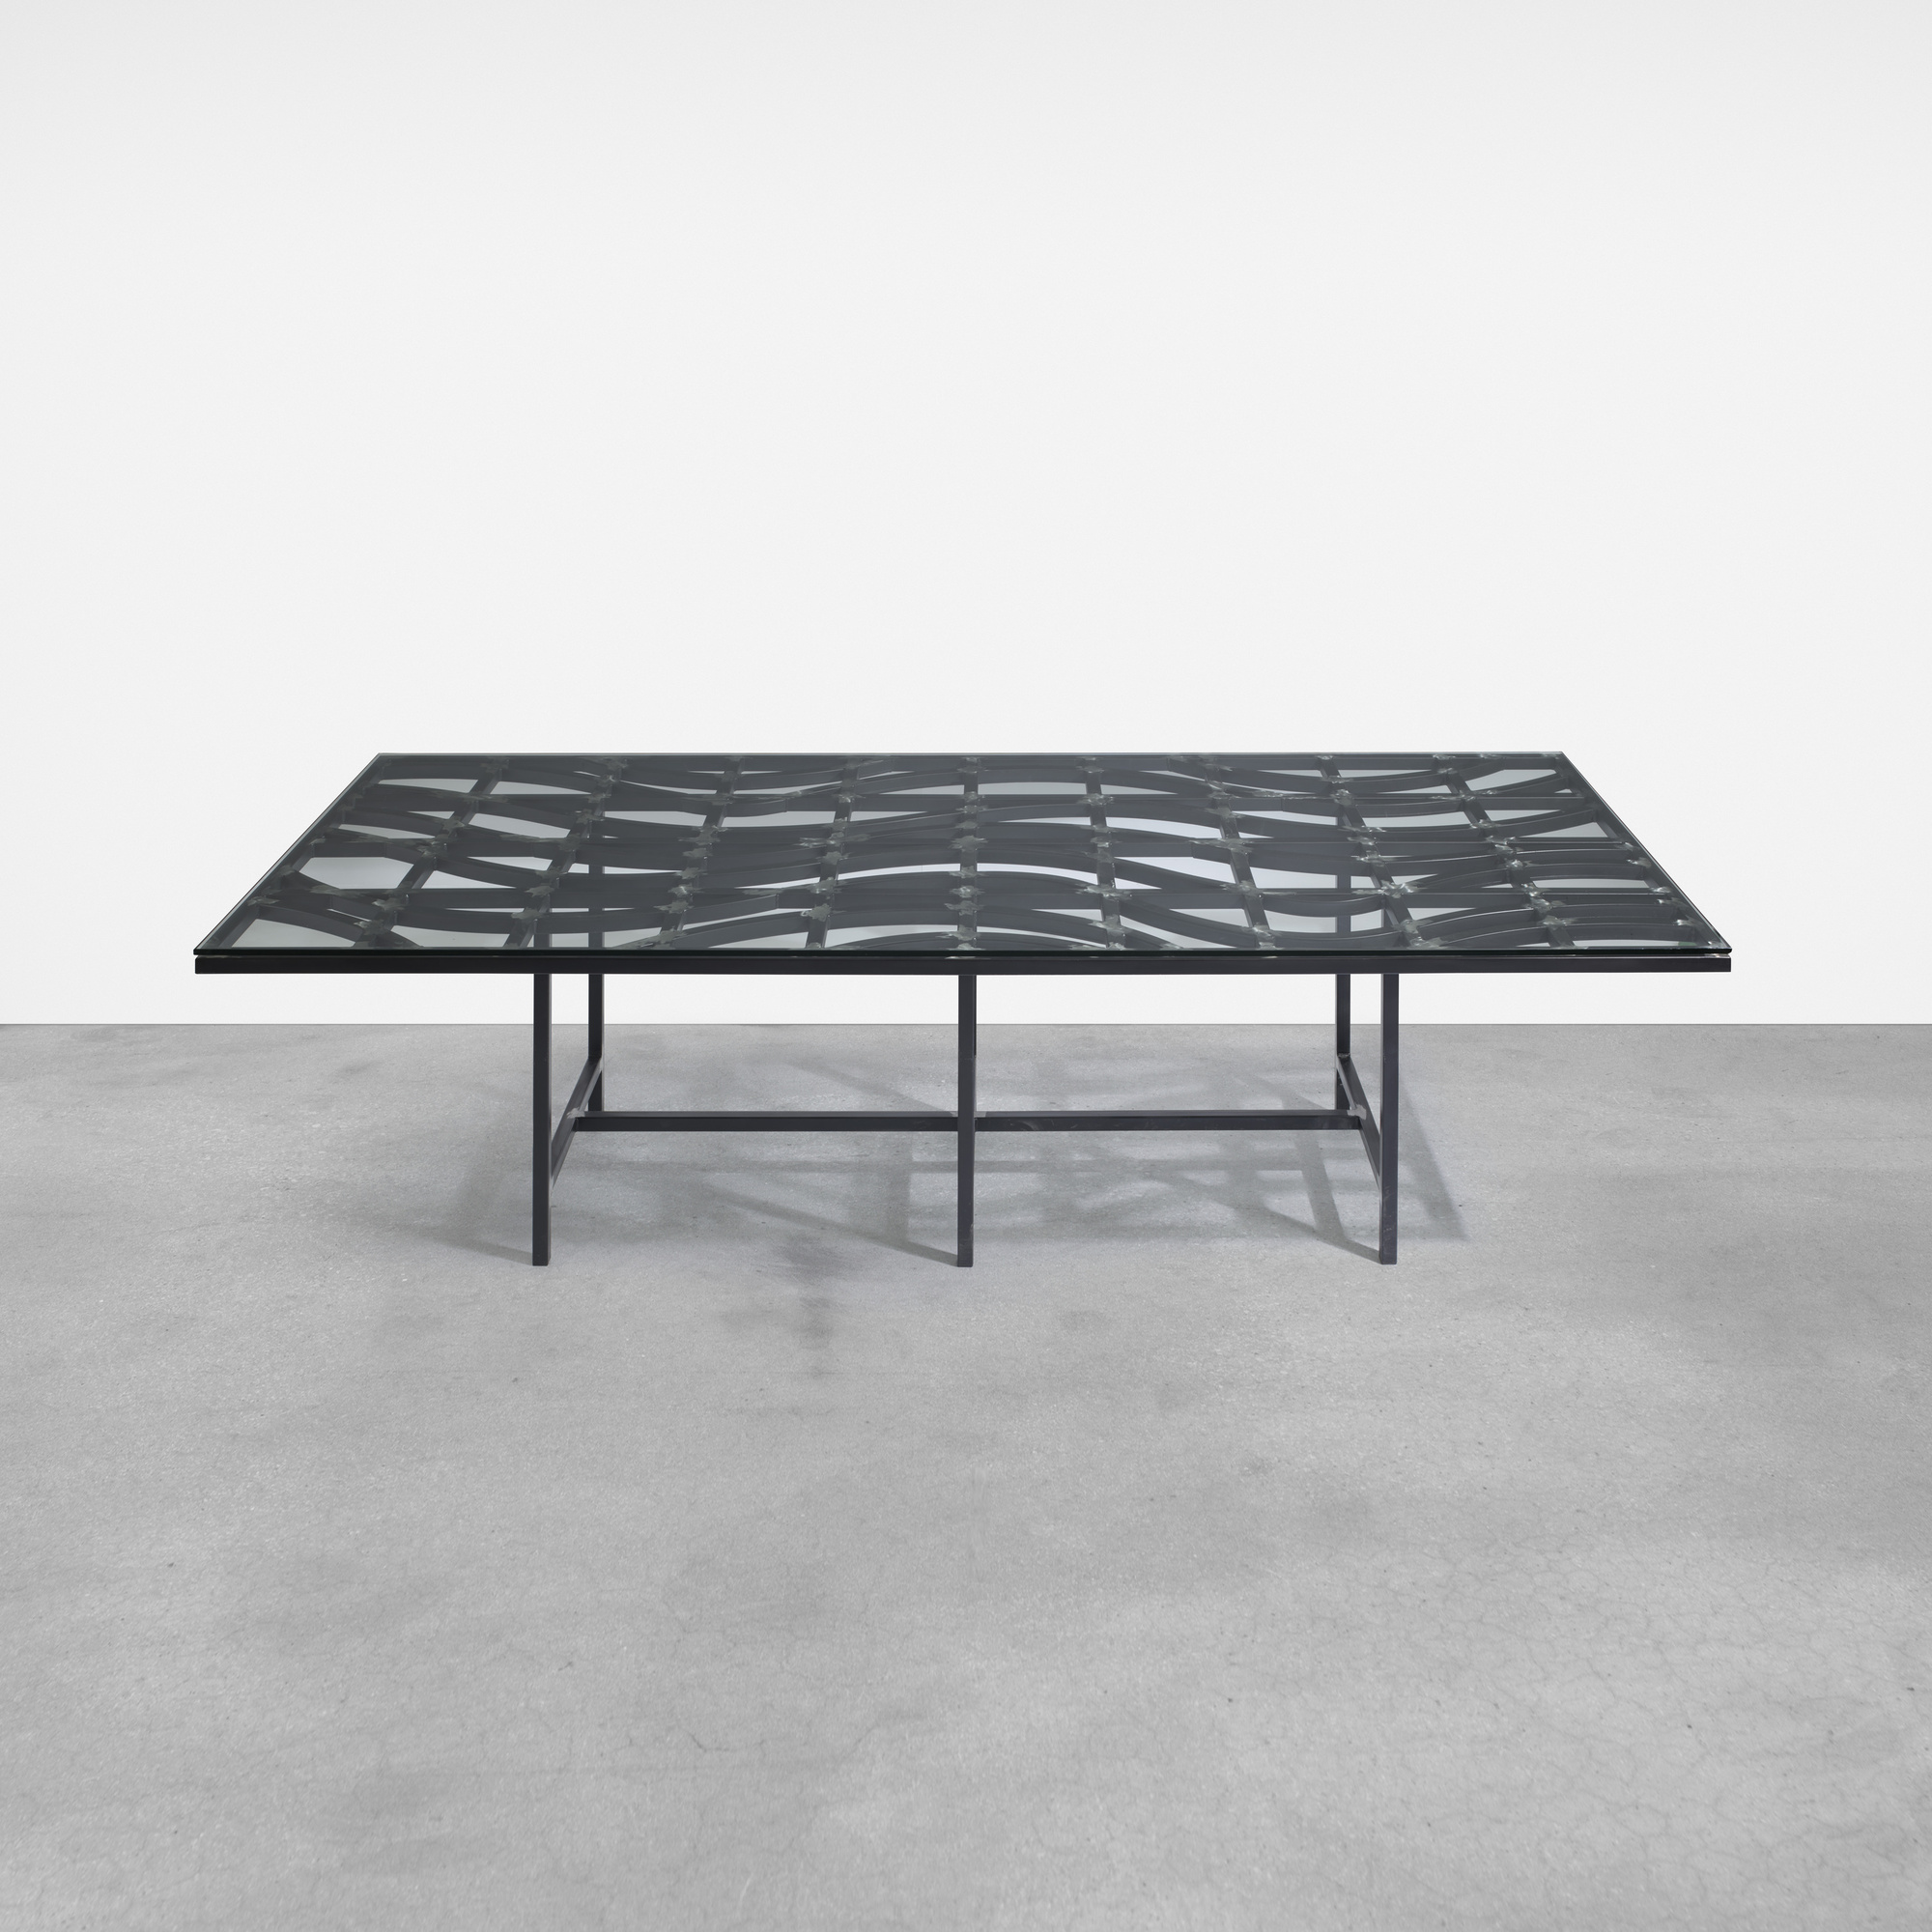 320: Sol LeWitt / dining table (1 of 3)